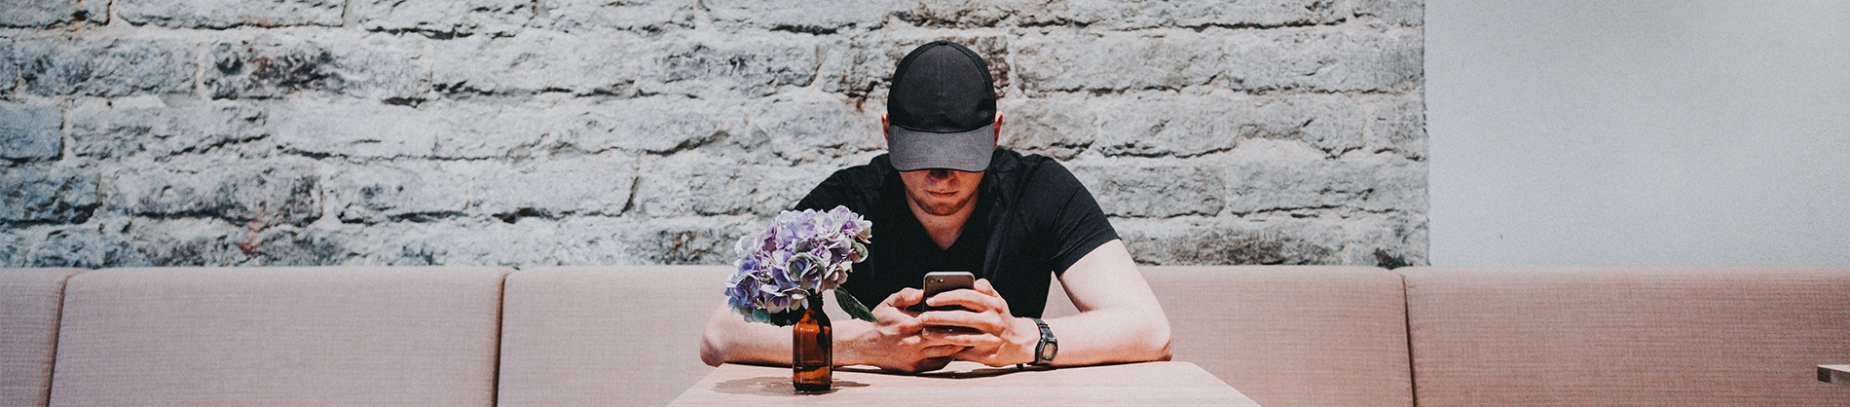 A man sat at a cafe table by himself on his phone